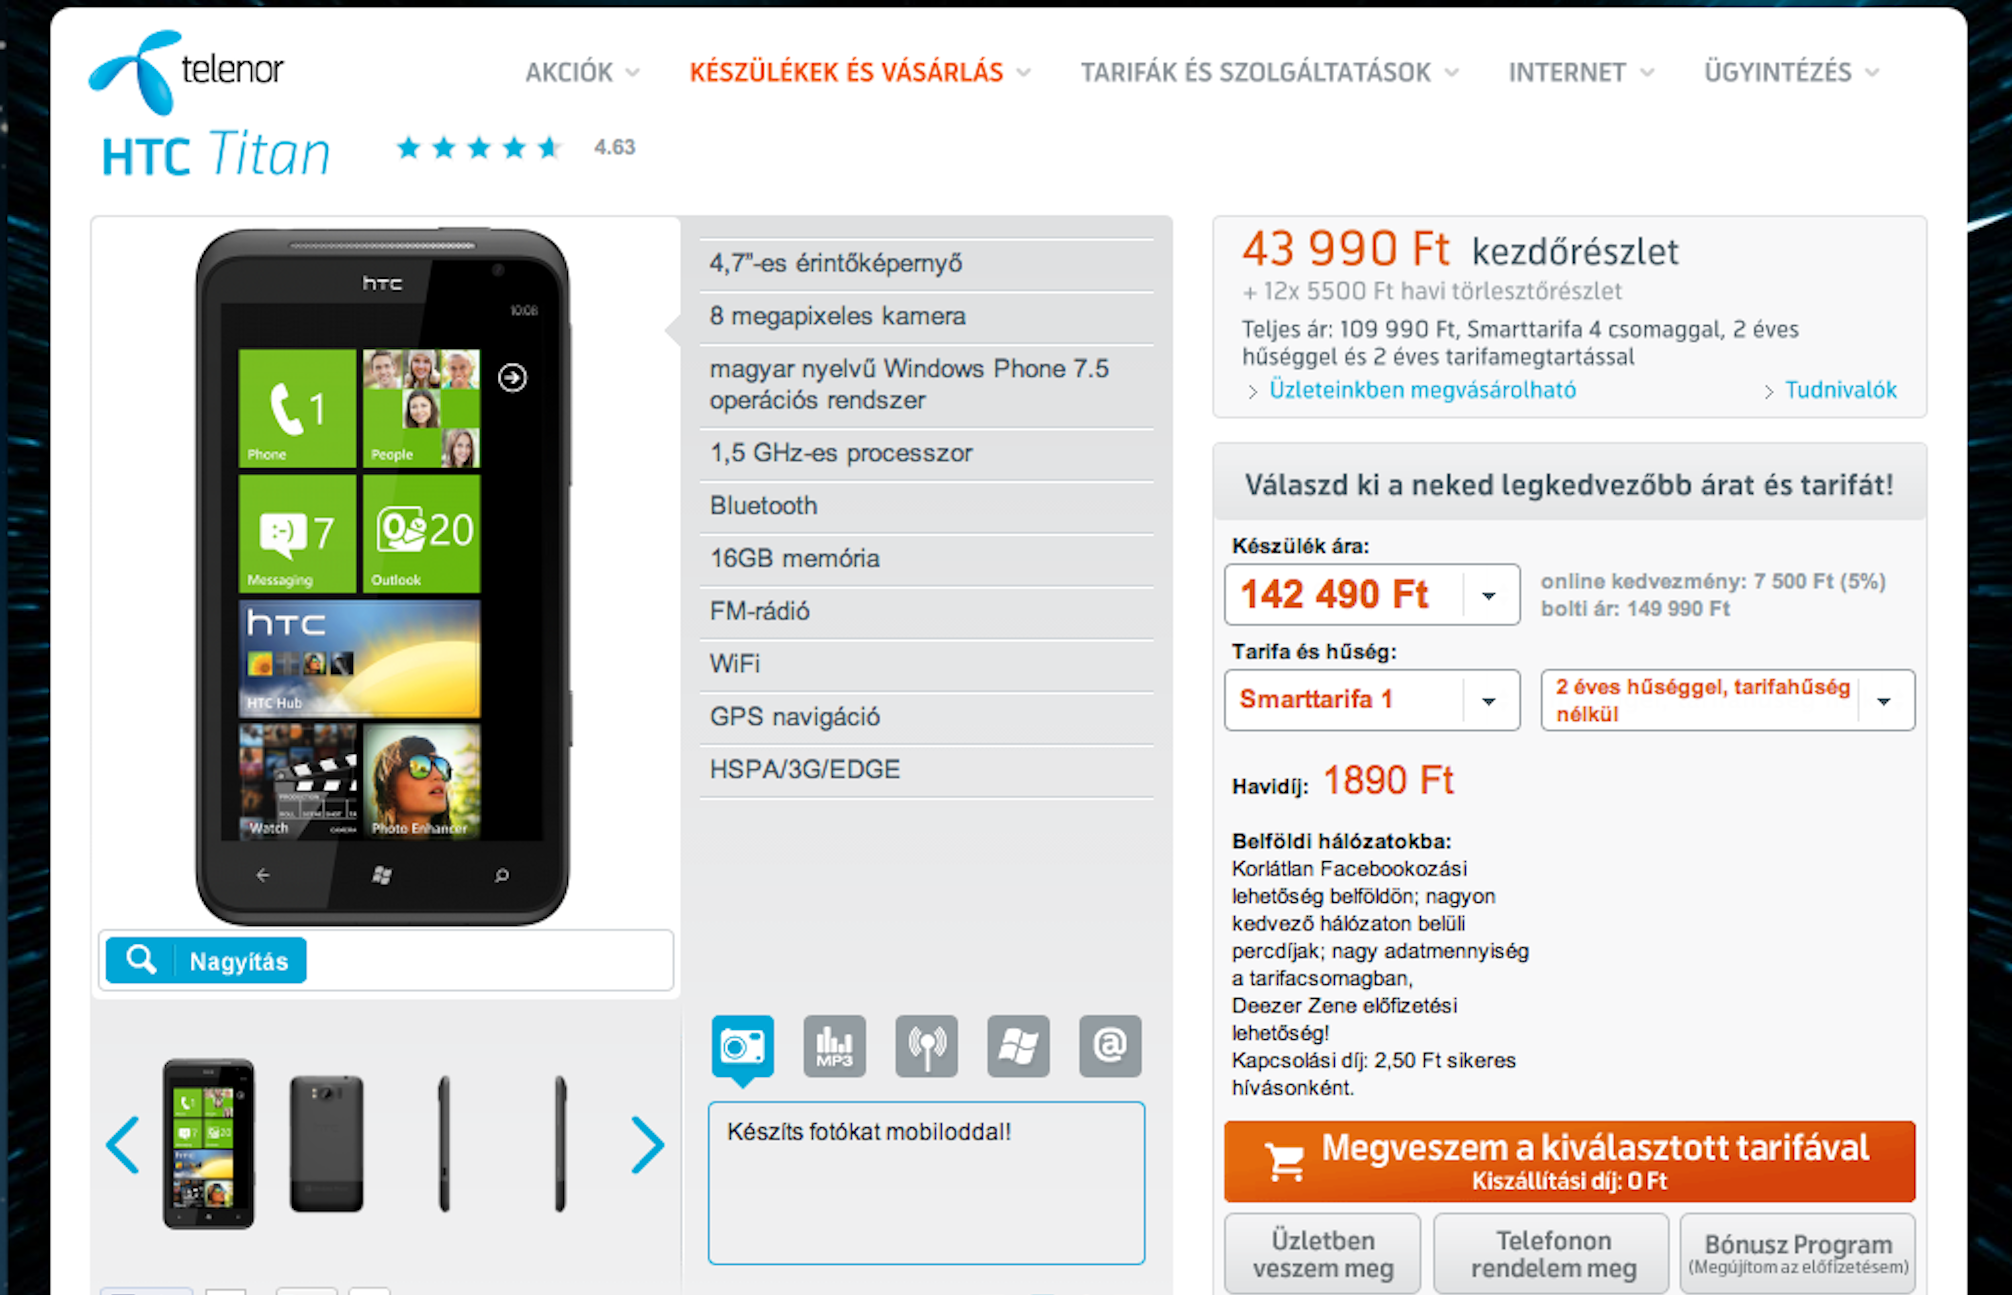 Product page at 2011